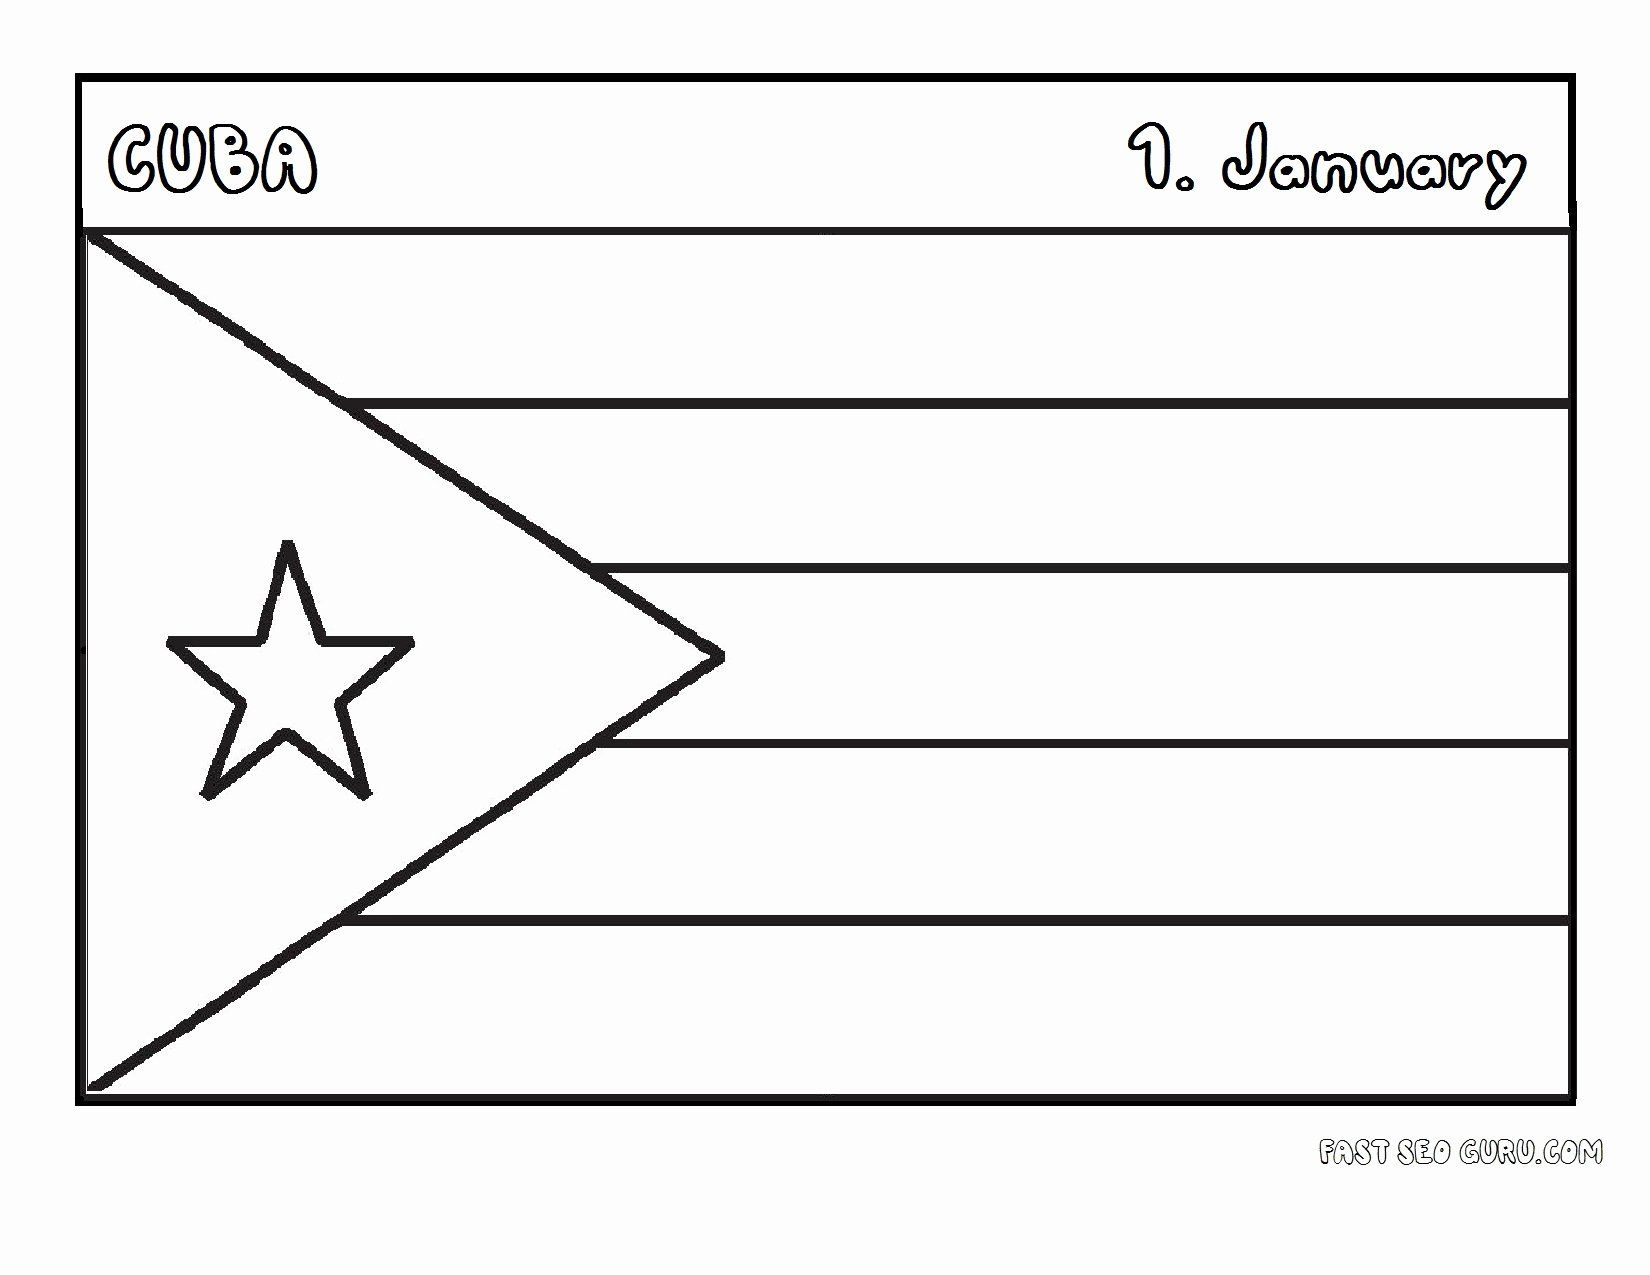 Cuba Flag Coloring Page Lovely Hispanic Heritage Flags